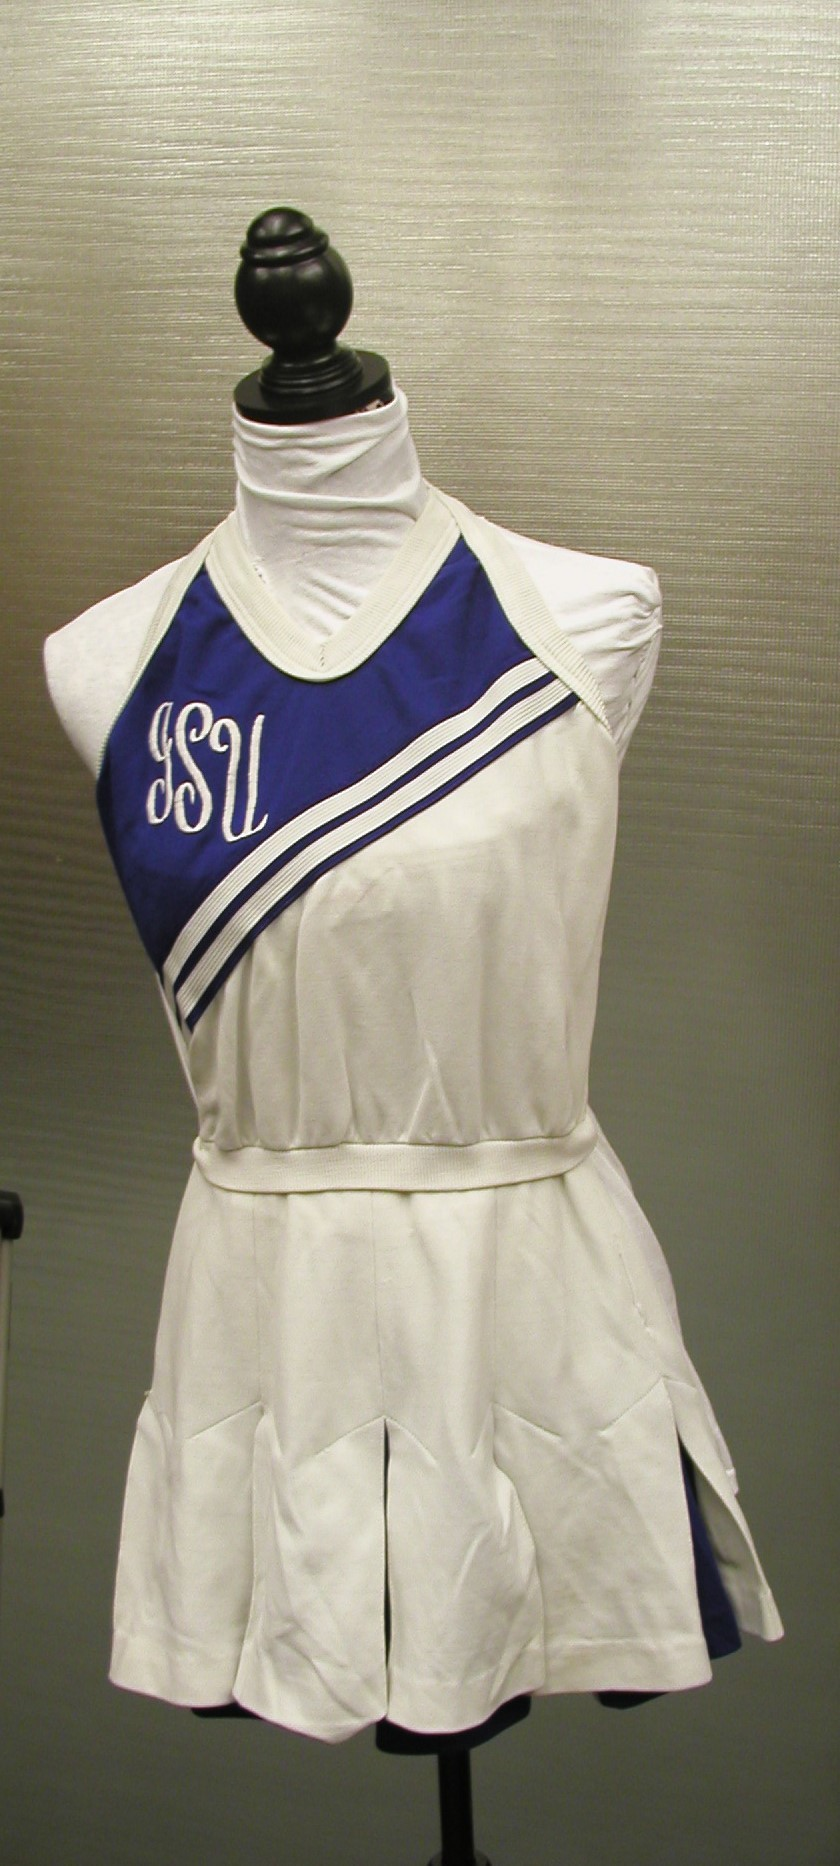 Cheerleader one-piece uniform